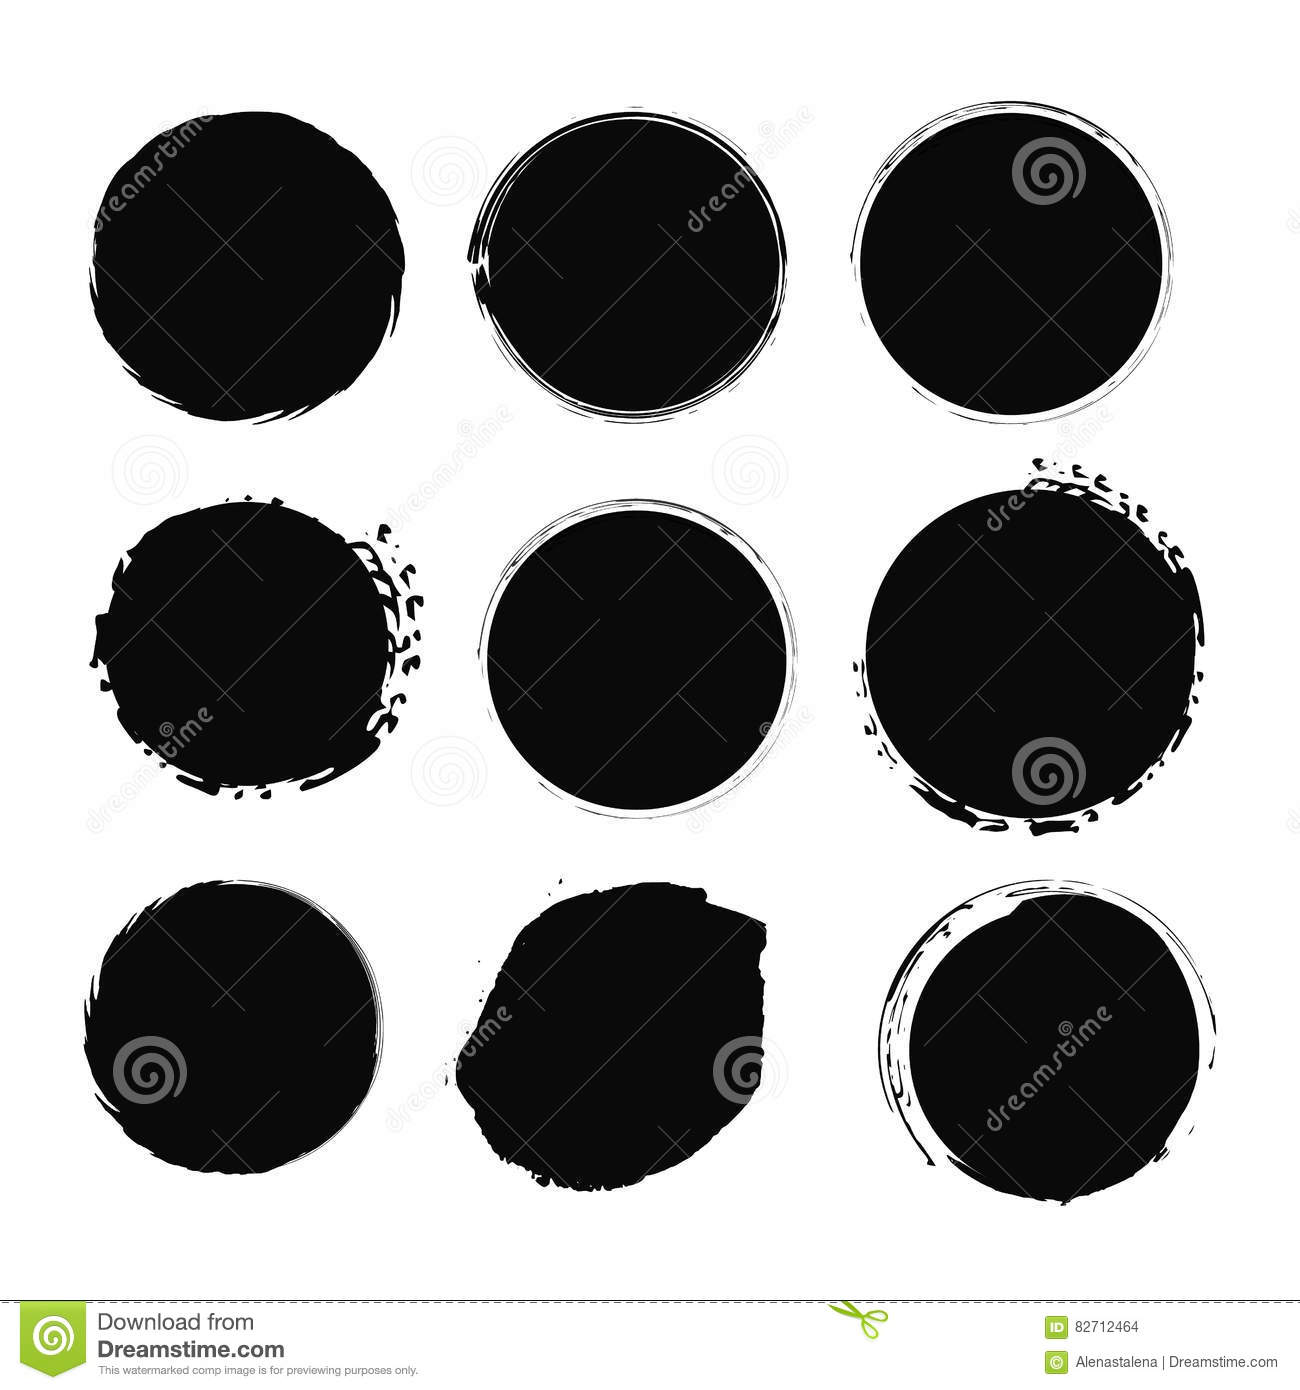 Vector grunge circle set. Grunge round shape for logos, banners, promotion, photo overlay